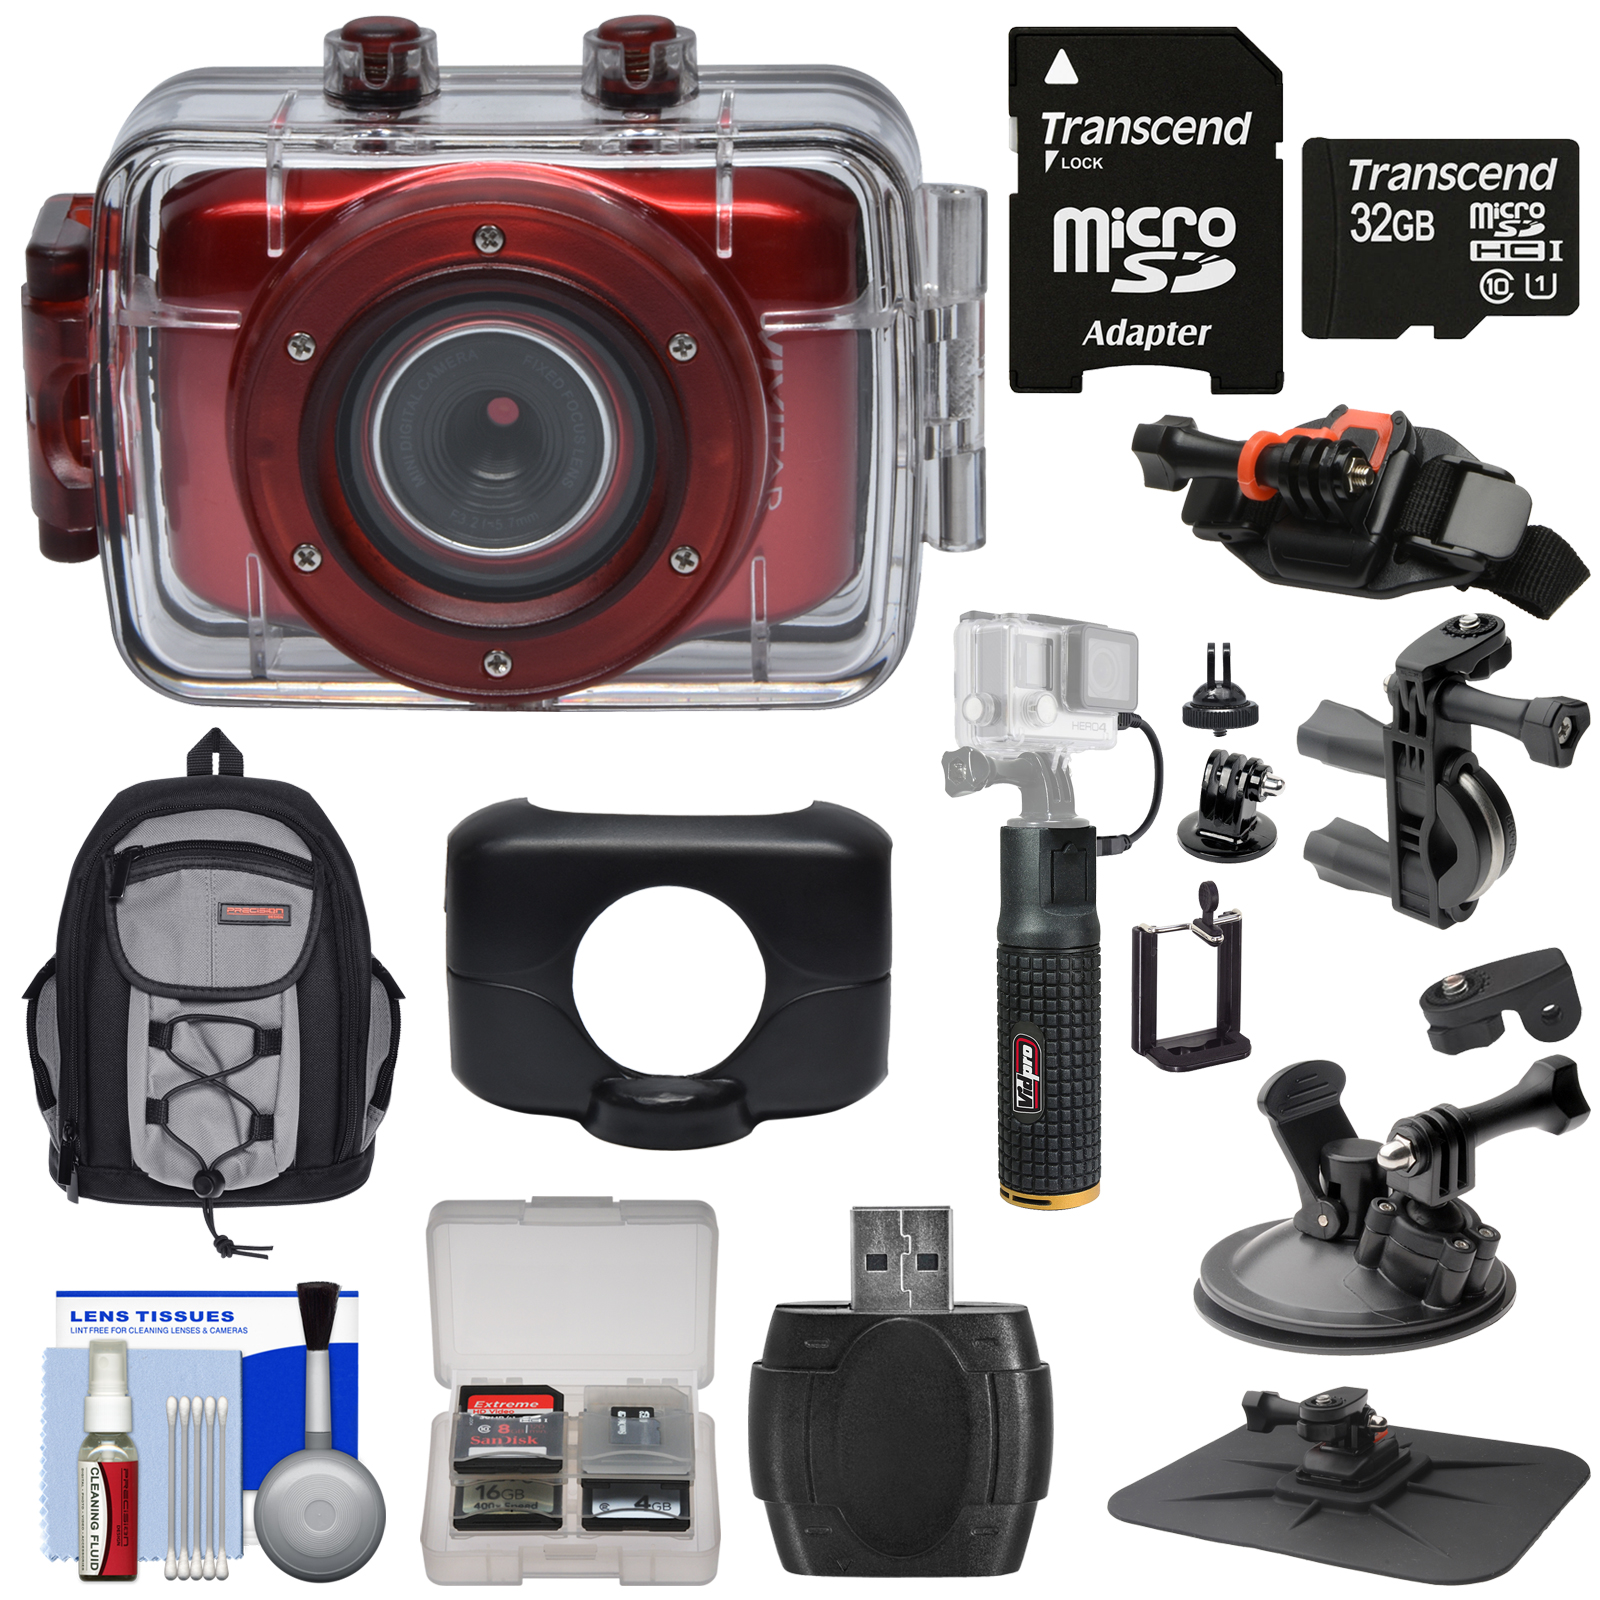 Vivitar DVR781HD HD Waterproof Action Video Camera Camcorder (Red) with 32GB Card + Suction Cup, Helmet, Bike Mounts + Backpack + Battery Grip Kit